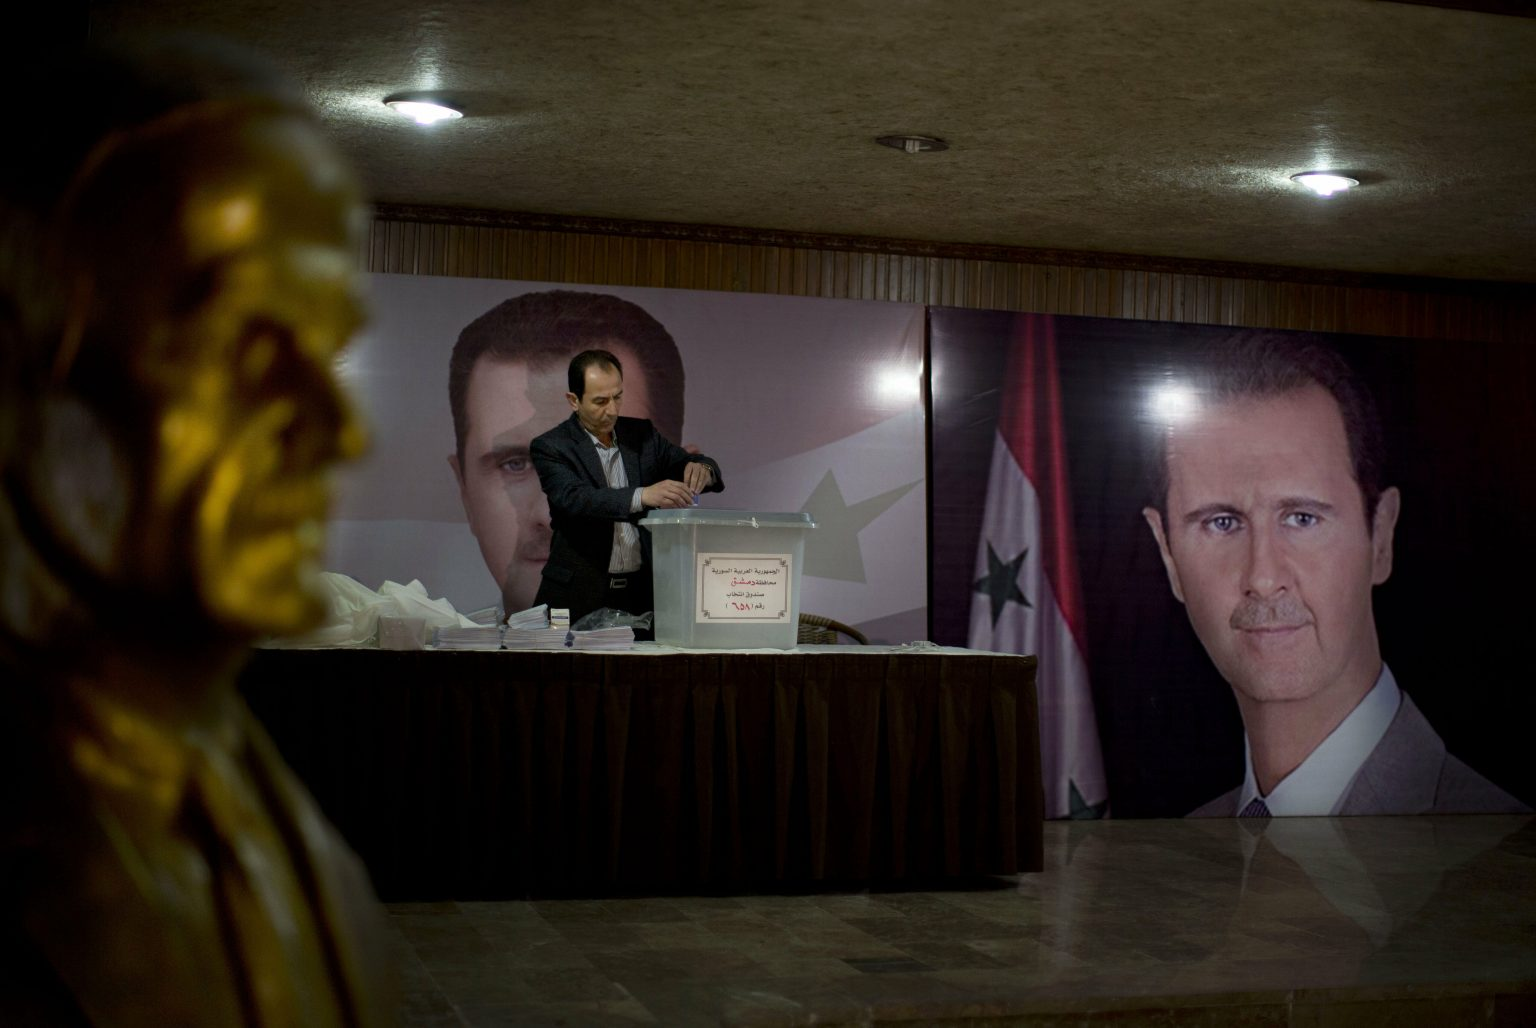 A Syrian poll worker waiting for voters at a polling station for the People's Council elections, where posters of the head of the Syrian regime, Bashar al-Assad, are displayed, along with a statue of al-Assad the father - April 2016 (AP)